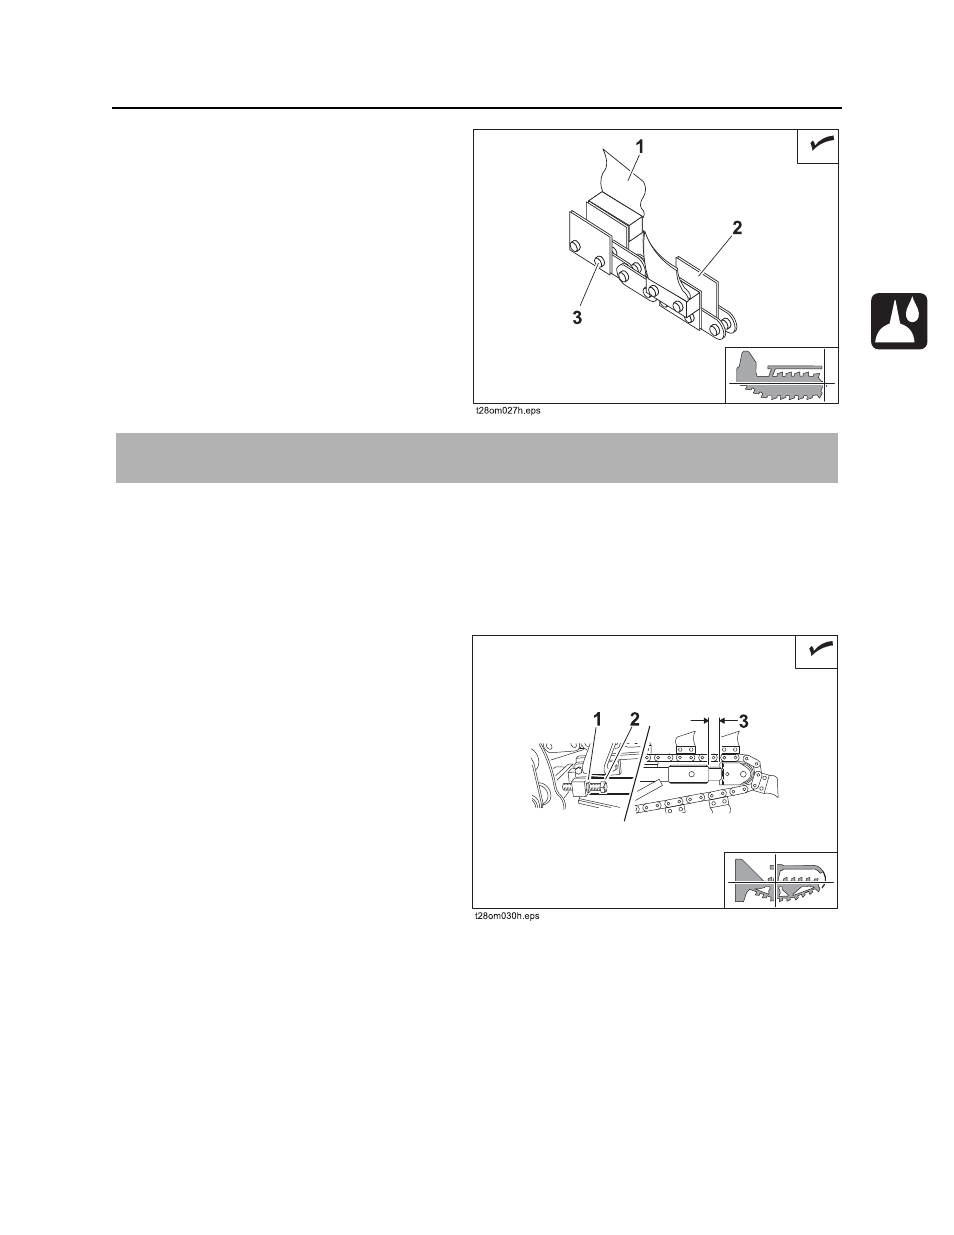 Rt45 operator's manual | Ditch Witch RT45 User Manual | Page 146 / on new holland wiring diagram, sakai wiring diagram, lowe wiring diagram, sullair wiring diagram, perkins wiring diagram, lull wiring diagram, clark wiring diagram, van hool wiring diagram, astec wiring diagram, case wiring diagram, liebherr wiring diagram, bomag wiring diagram, demag wiring diagram, american wiring diagram, john deere wiring diagram, 3500 wiring diagram, international wiring diagram, simplicity wiring diagram, ingersoll rand wiring diagram, western star wiring diagram,